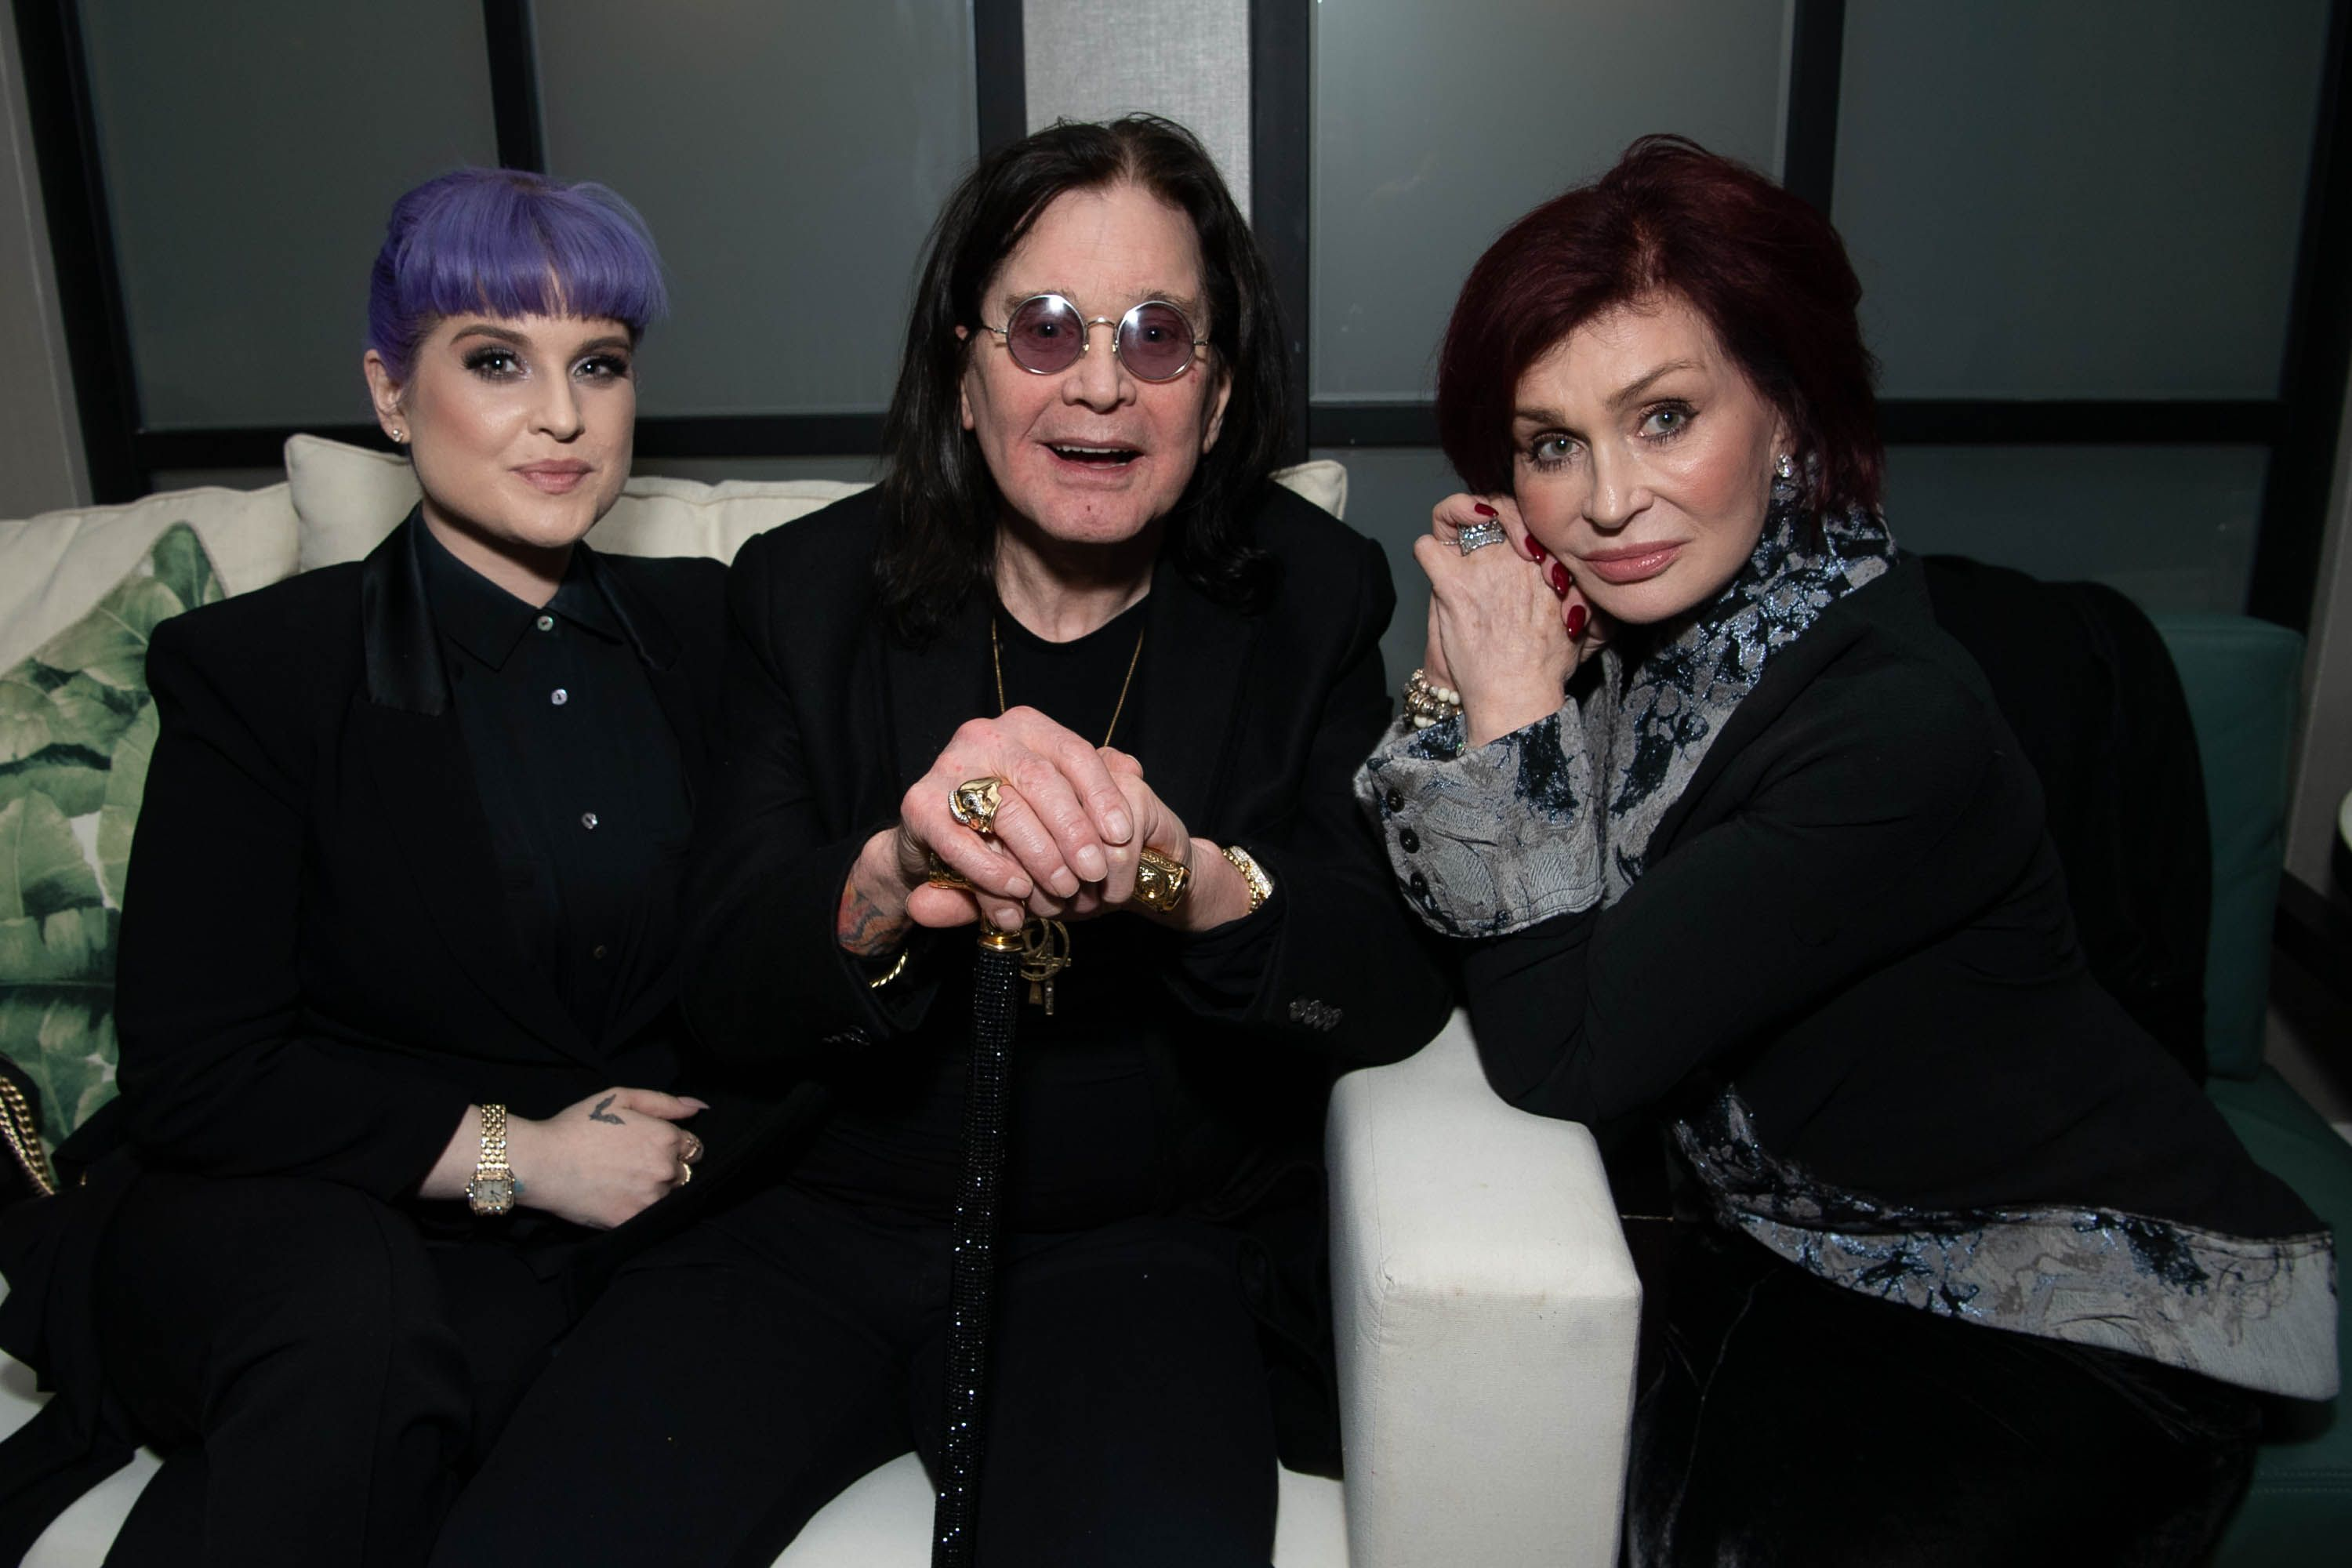 Ozzy Osbourne photographed with wife Sharon and daughter Kelly